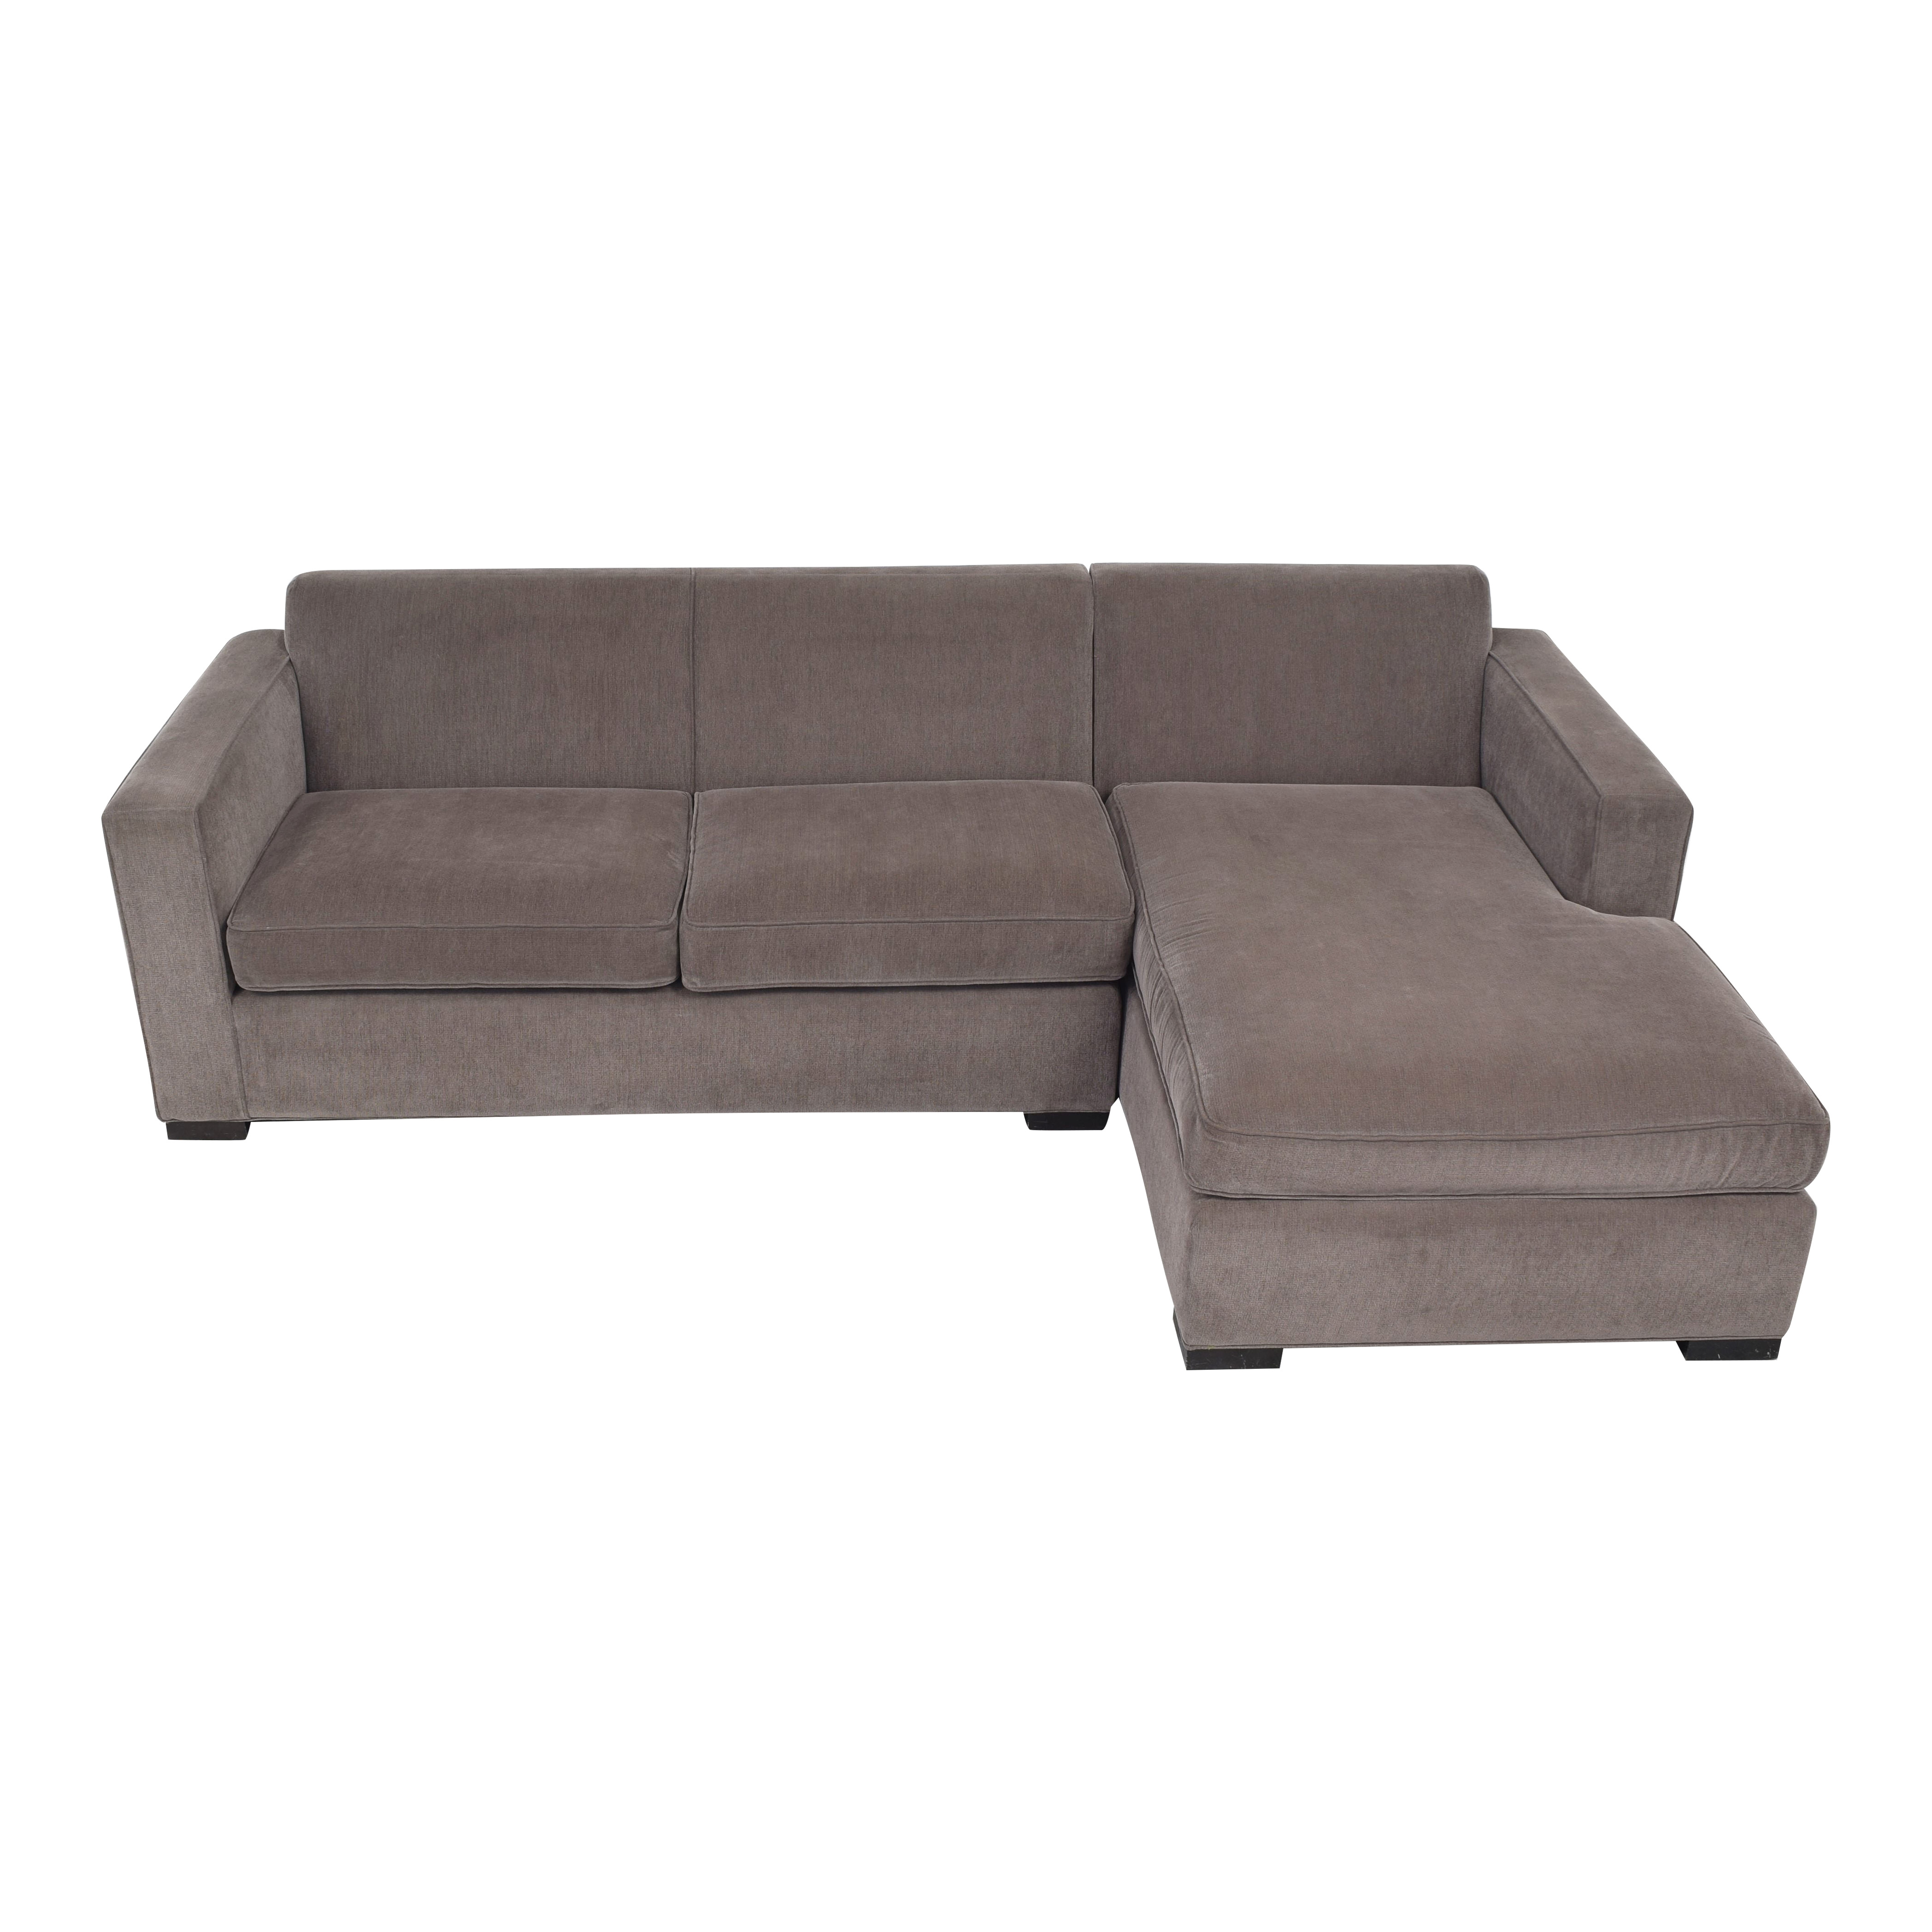 buy Room & Board Ian Two Piece Sectional Sofa Room & Board Sectionals